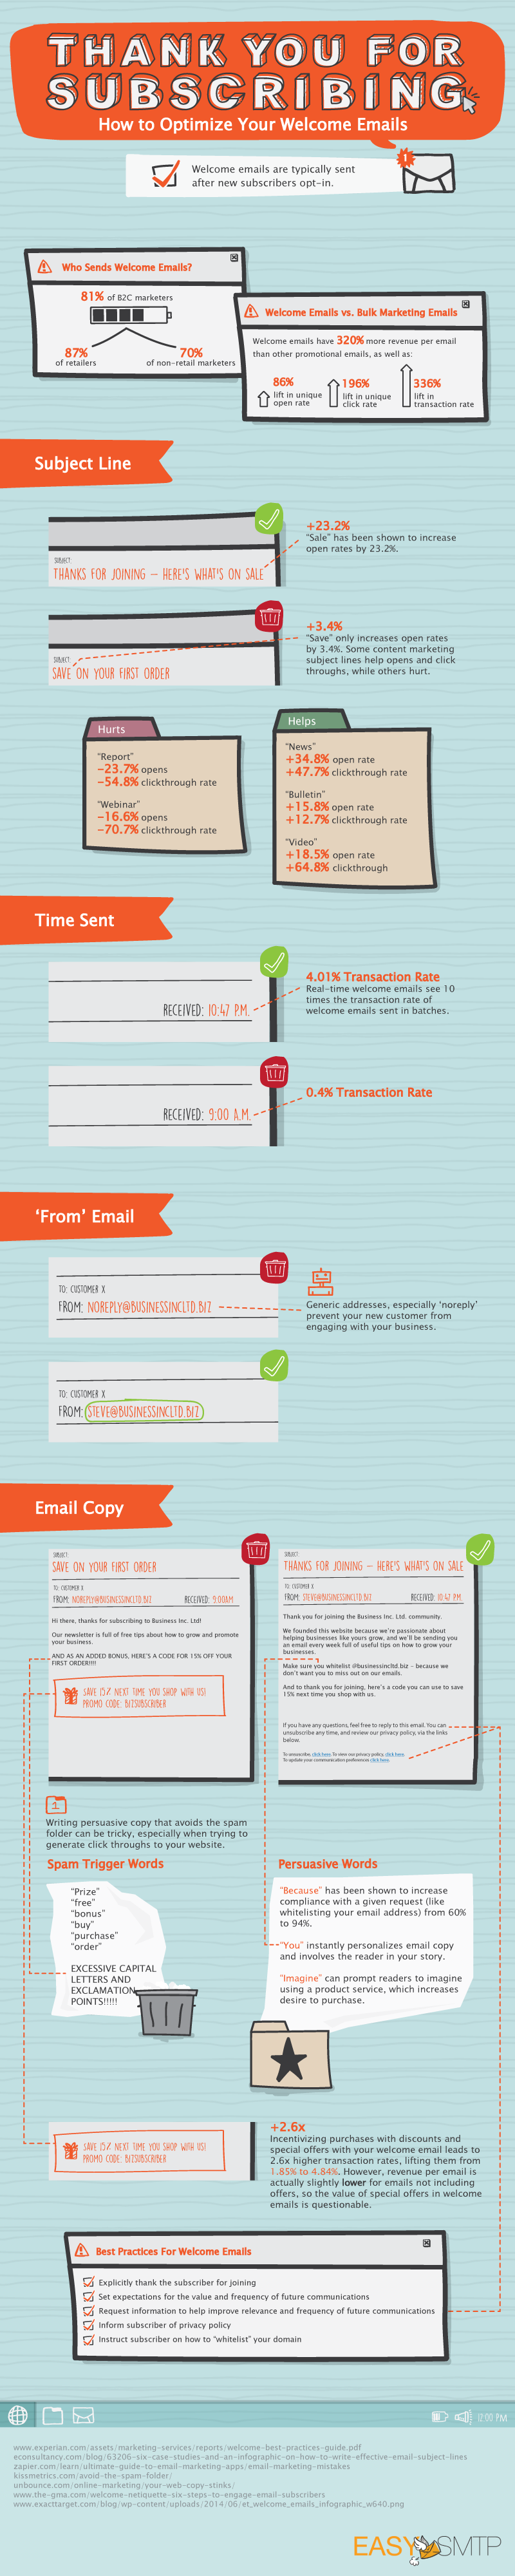 Email-Optimization-Tips